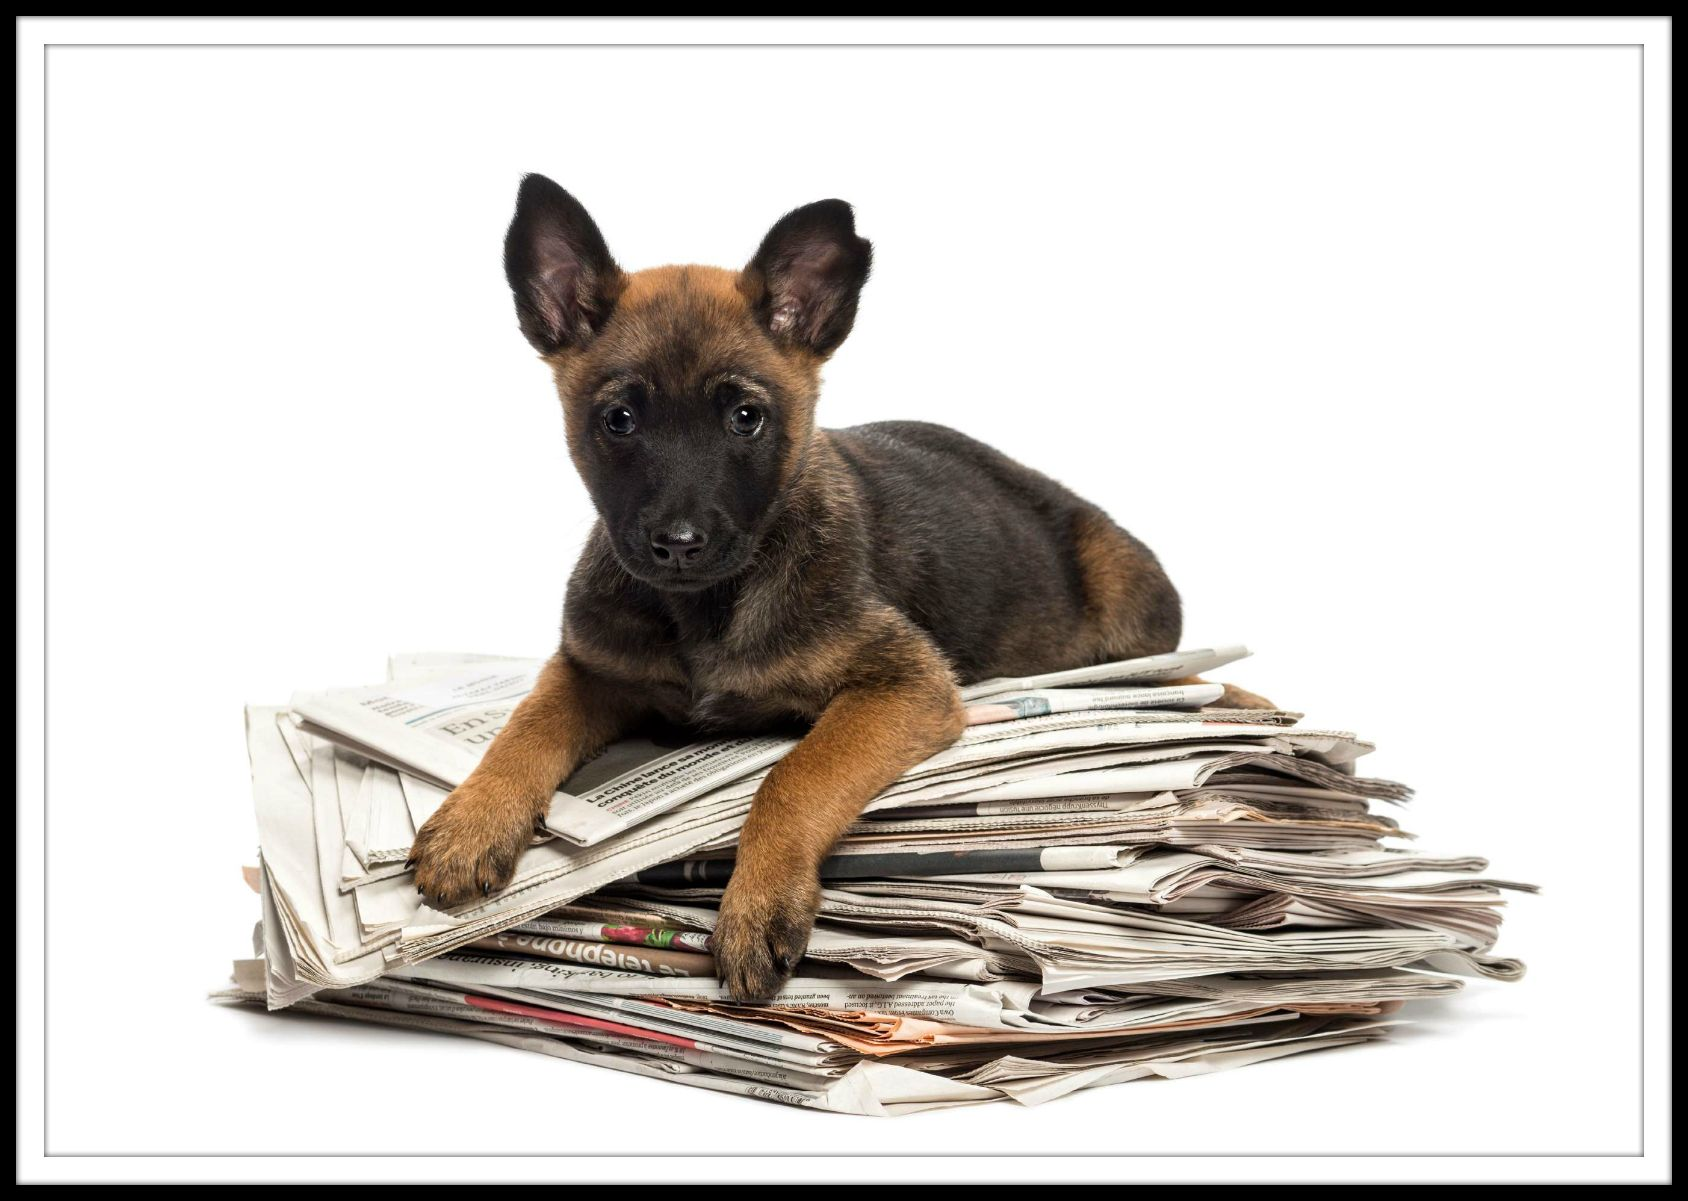 We desperately need newspaper! Several largescale rescues